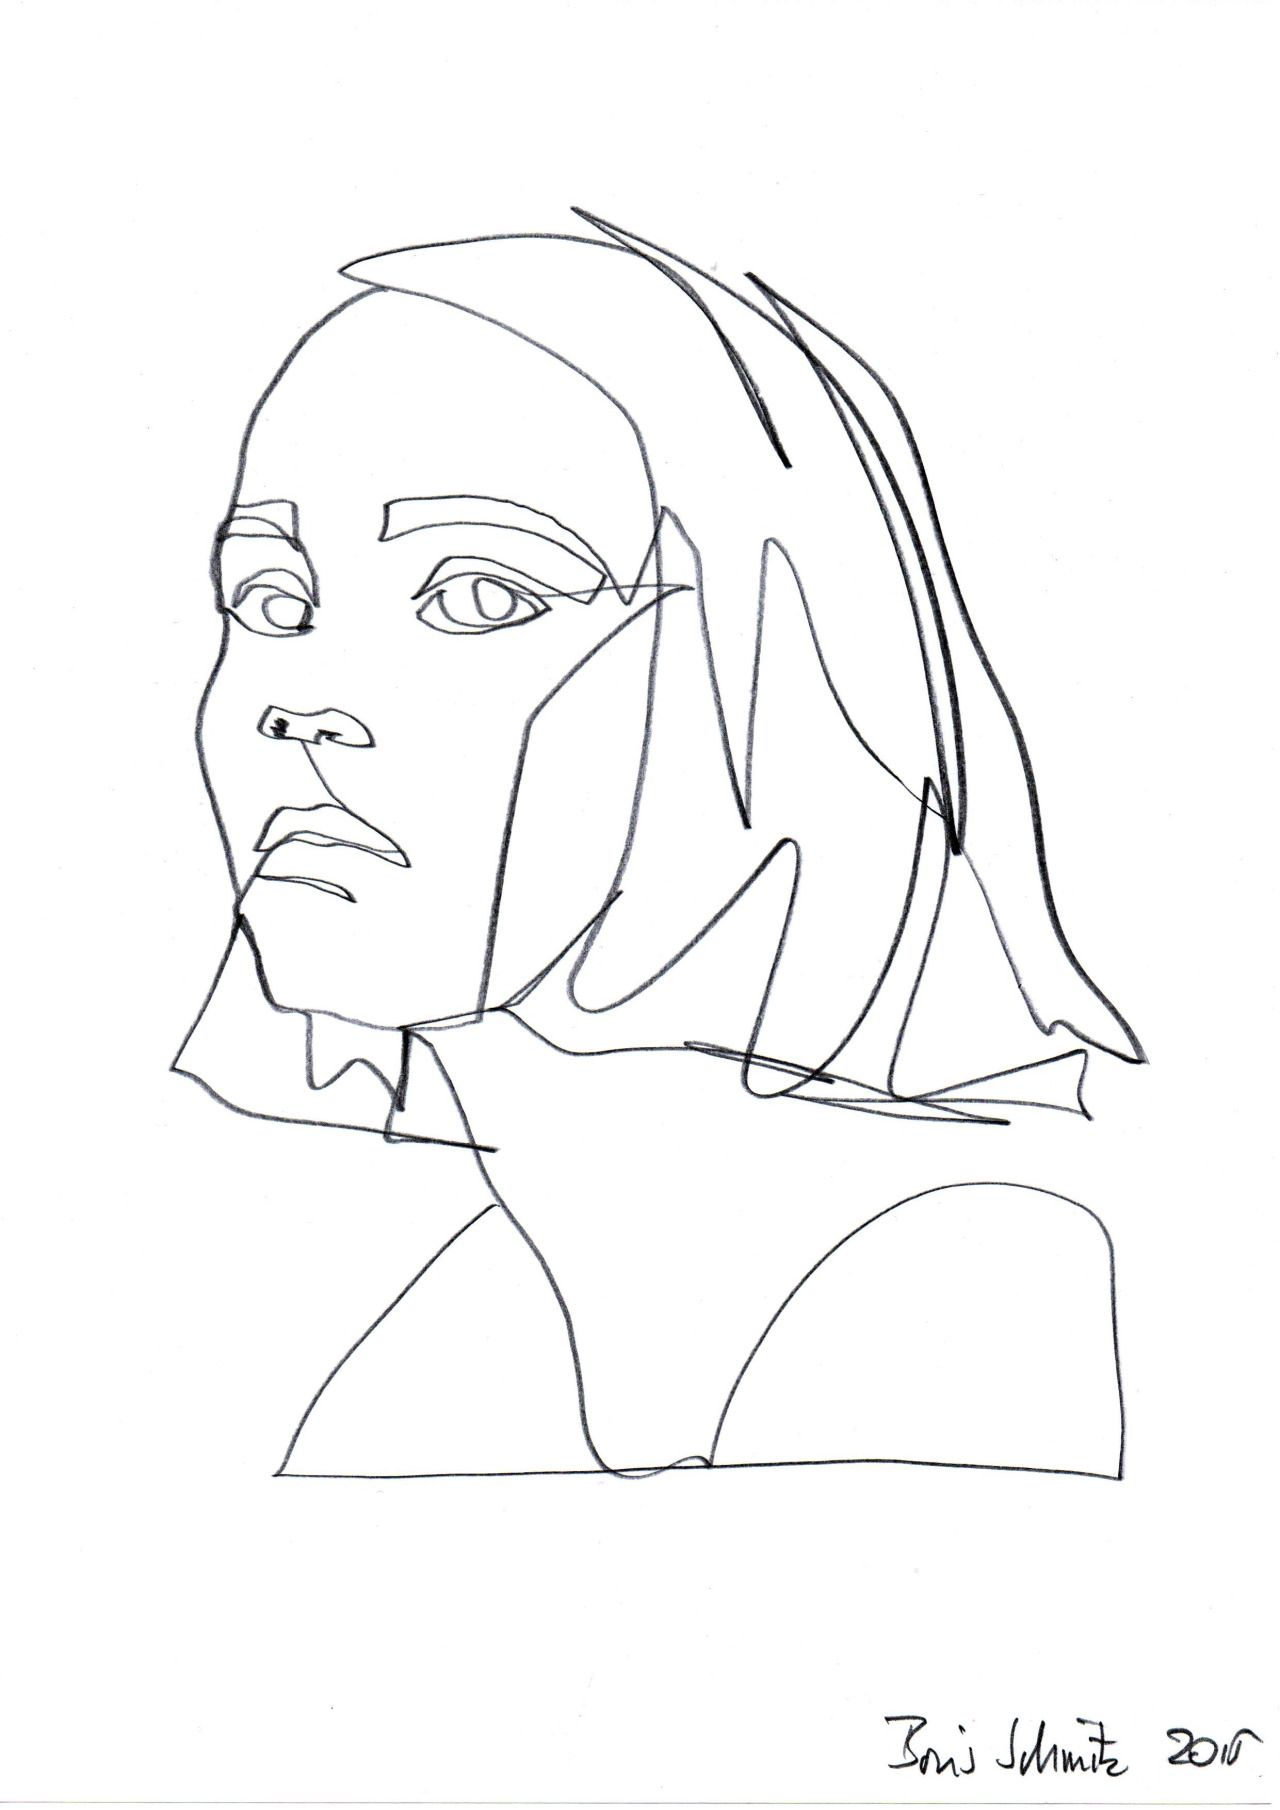 Line Art Body : I chose this these illustration because they re artistic